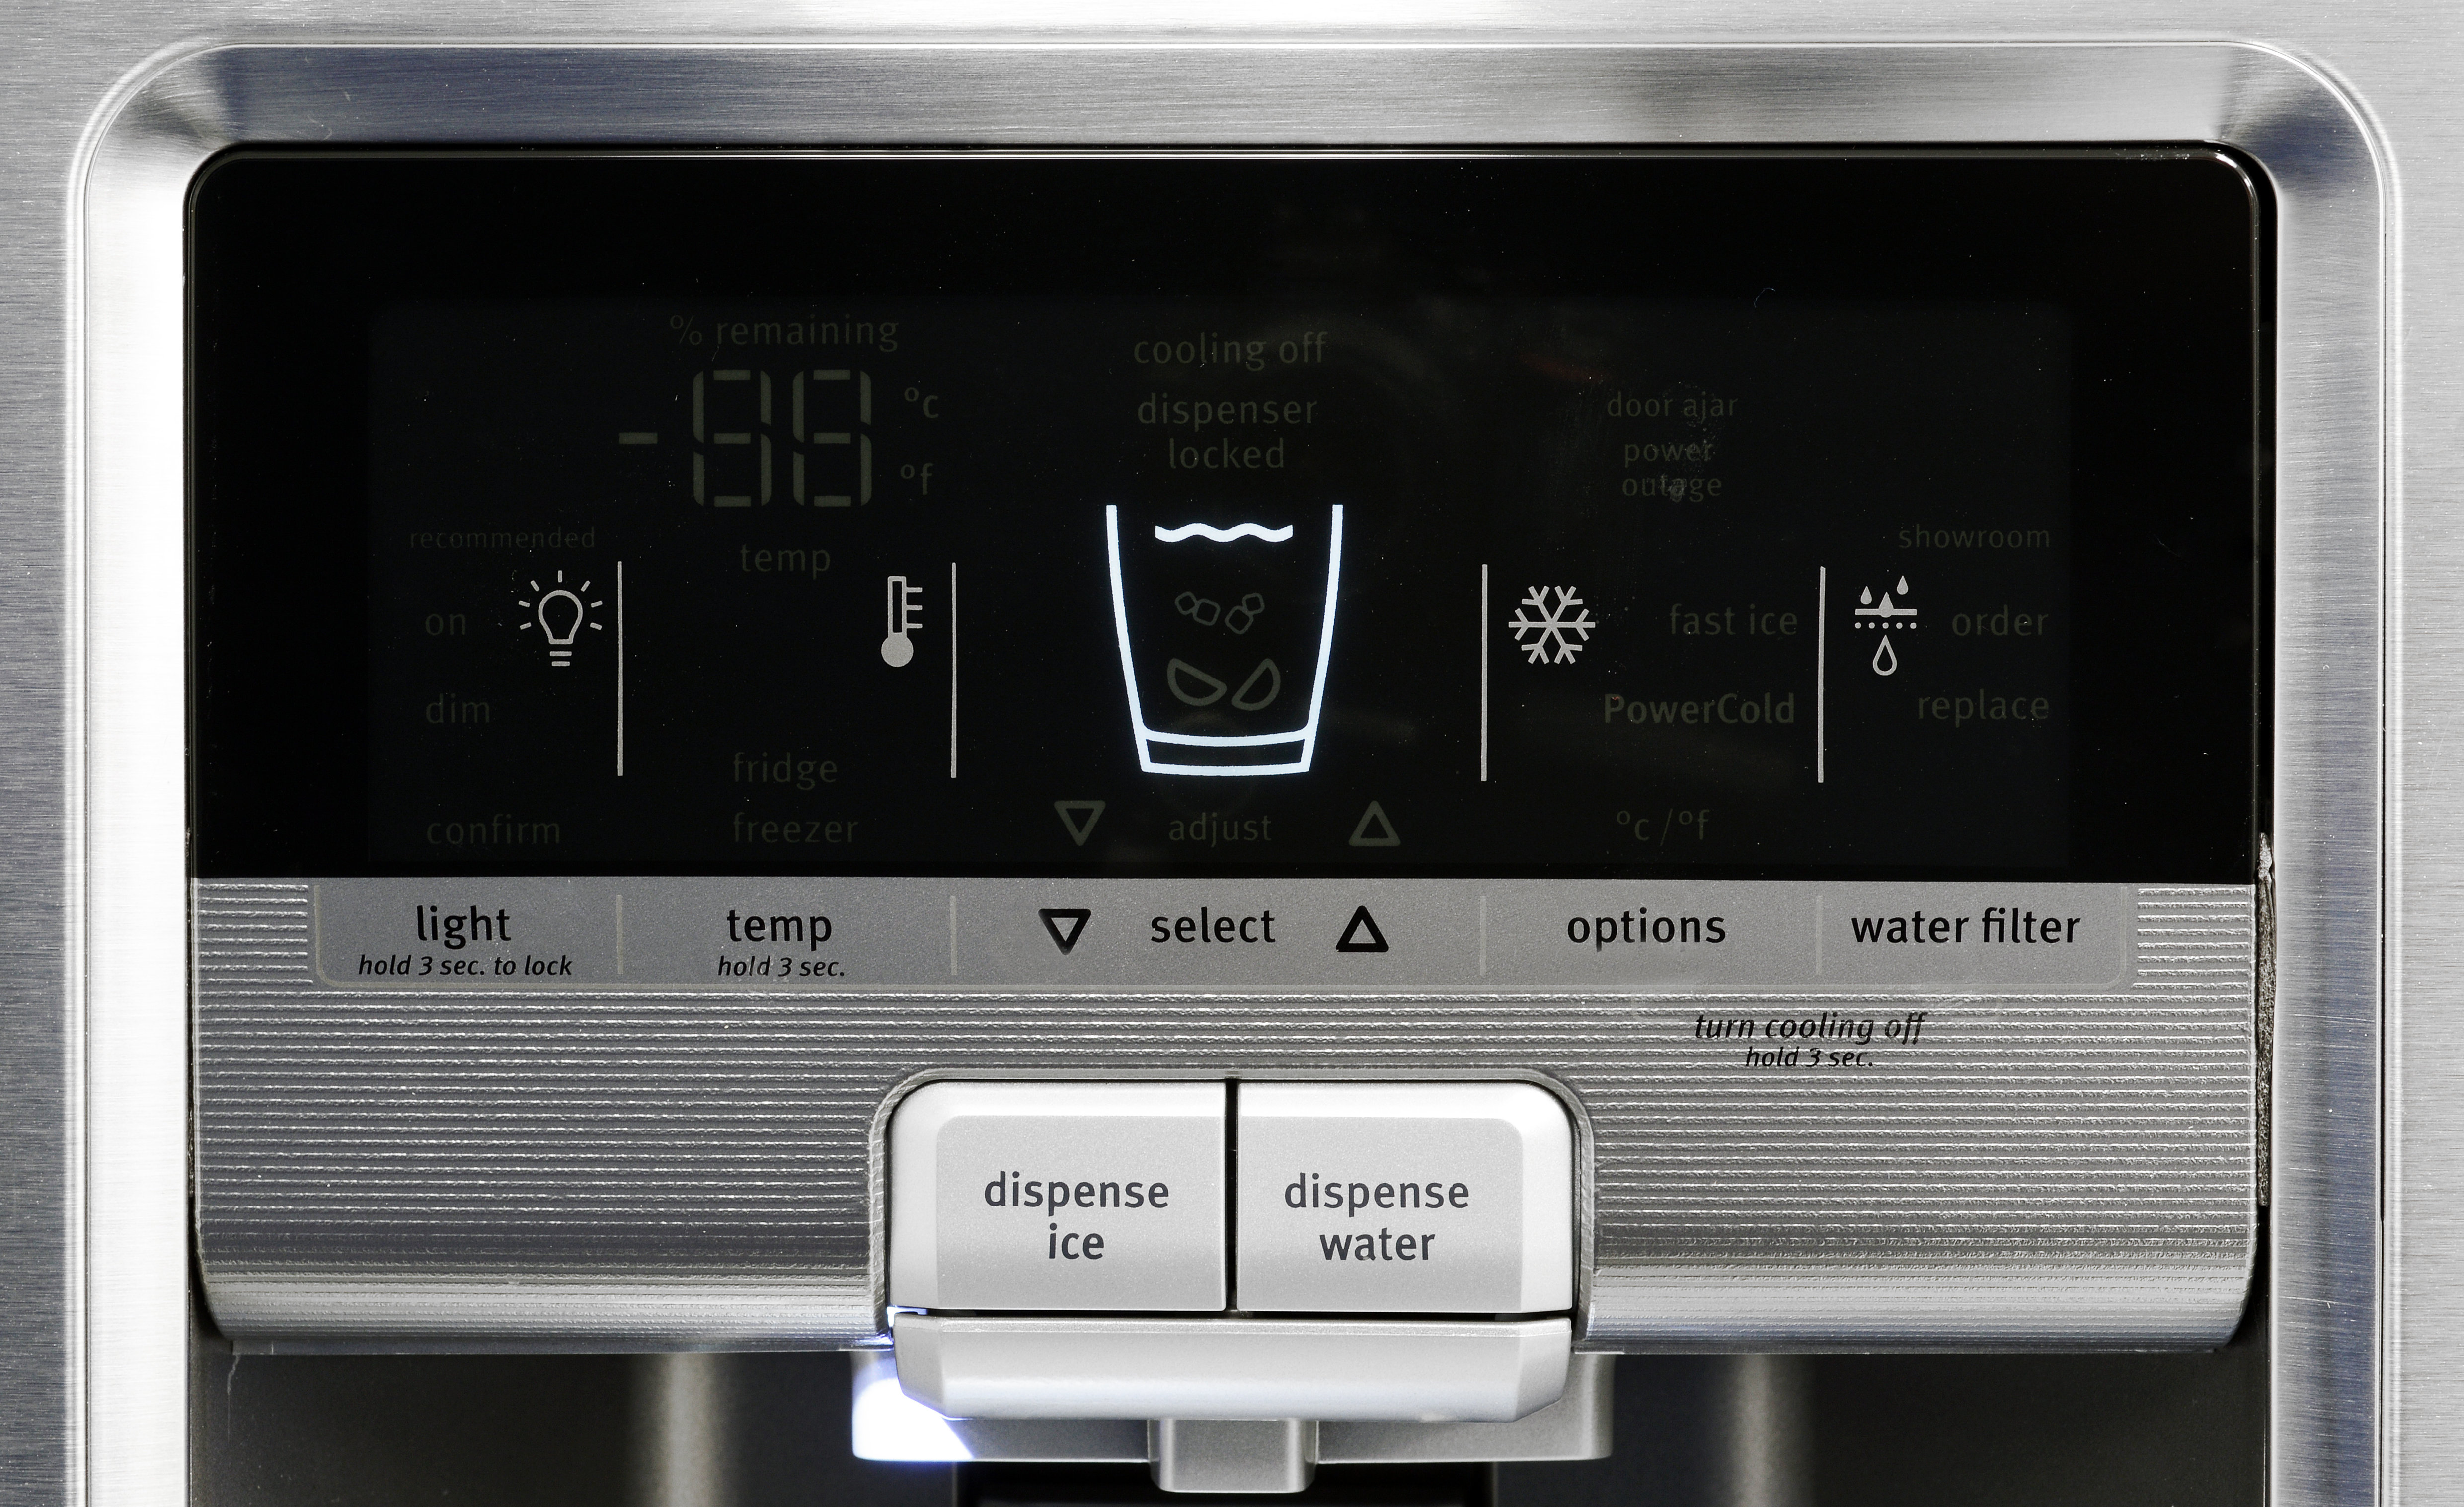 Even the Maytag MFX2876DRM's control panel, with its ridged lower section and large buttons, and an industrial feel to it.